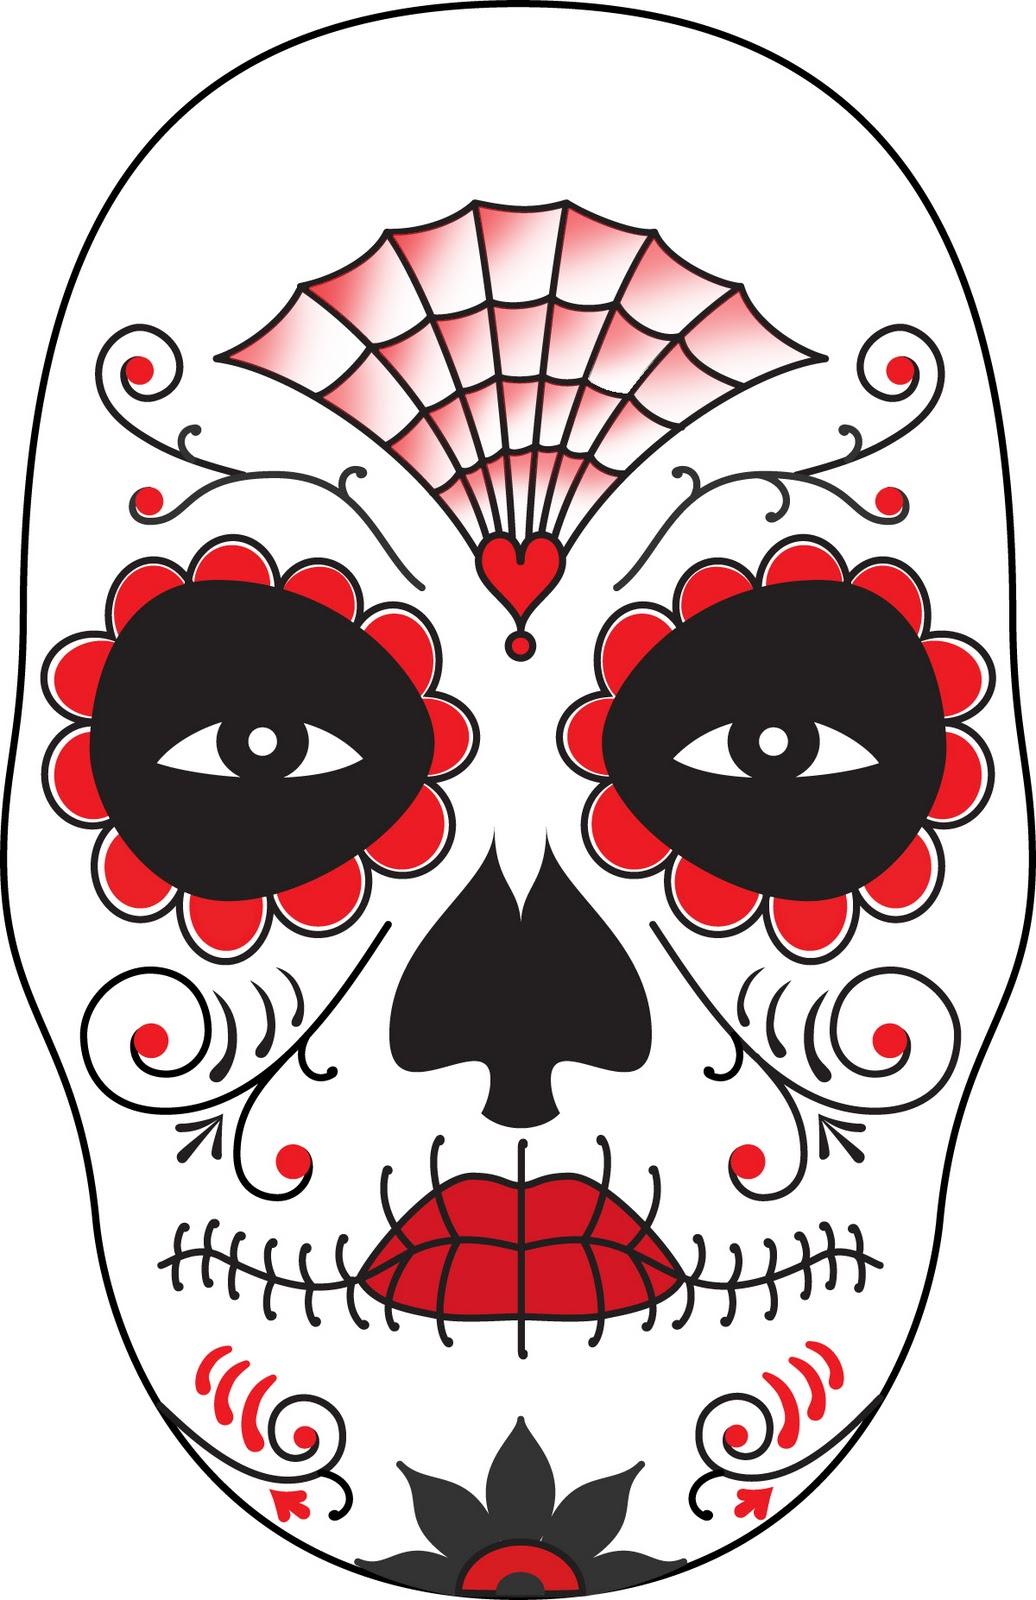 day of the dead skull mask template - surface fragments how to make a day of the dead mask